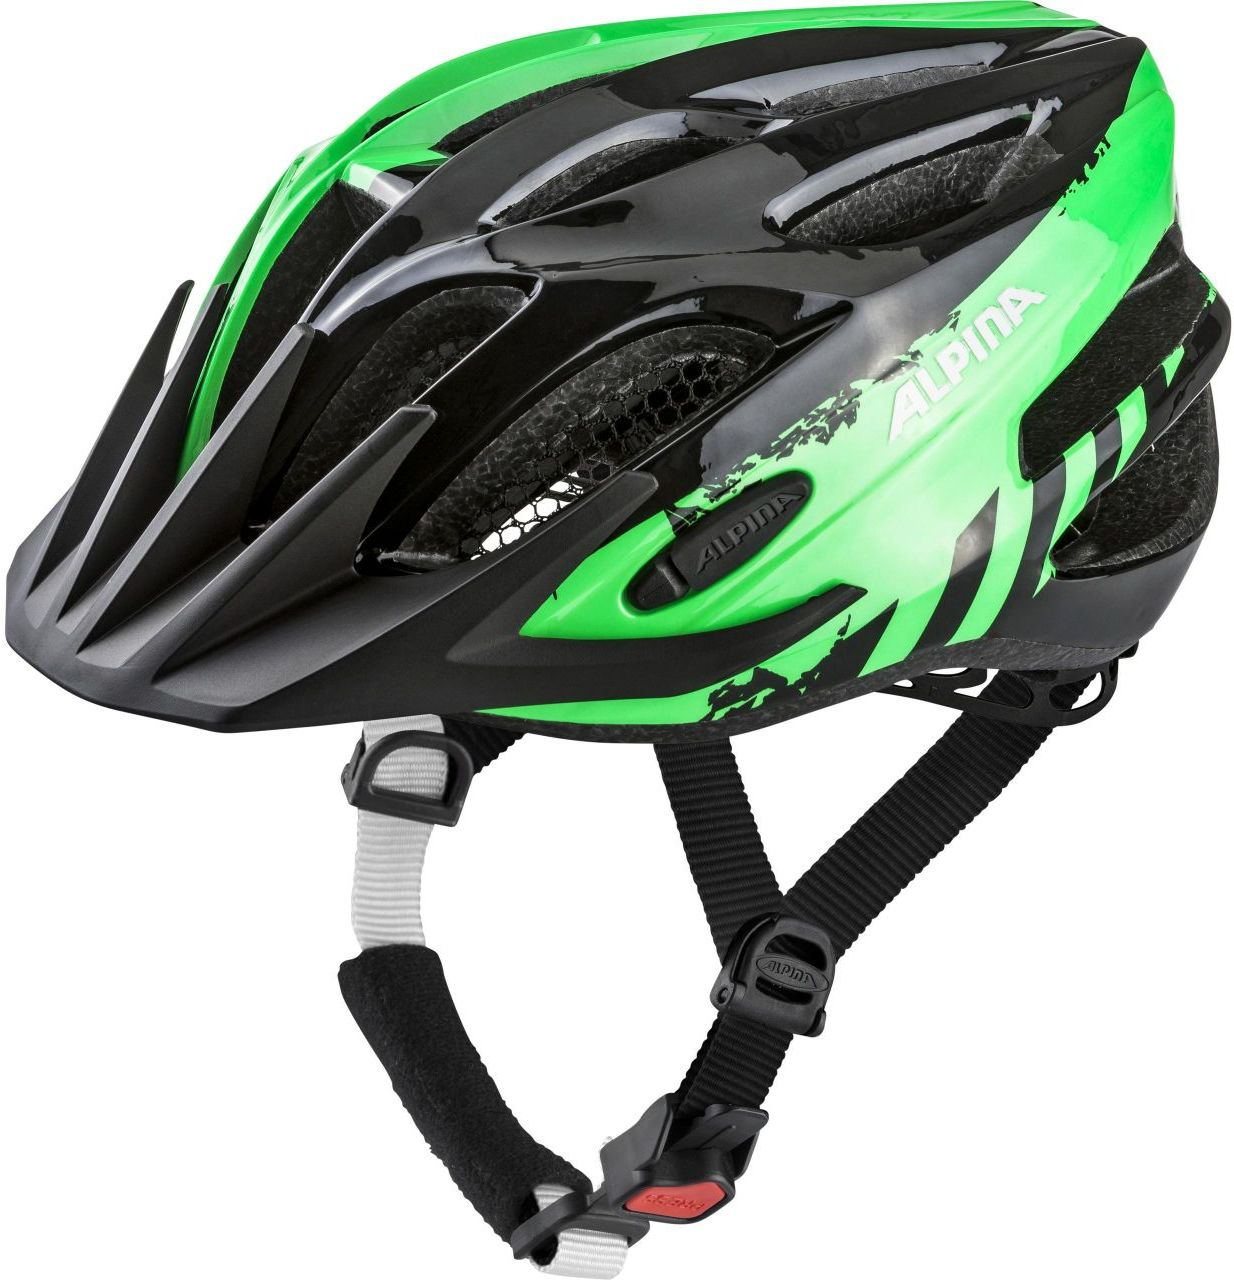 Alpina FB Jr. 2.0 - black/green 50-55